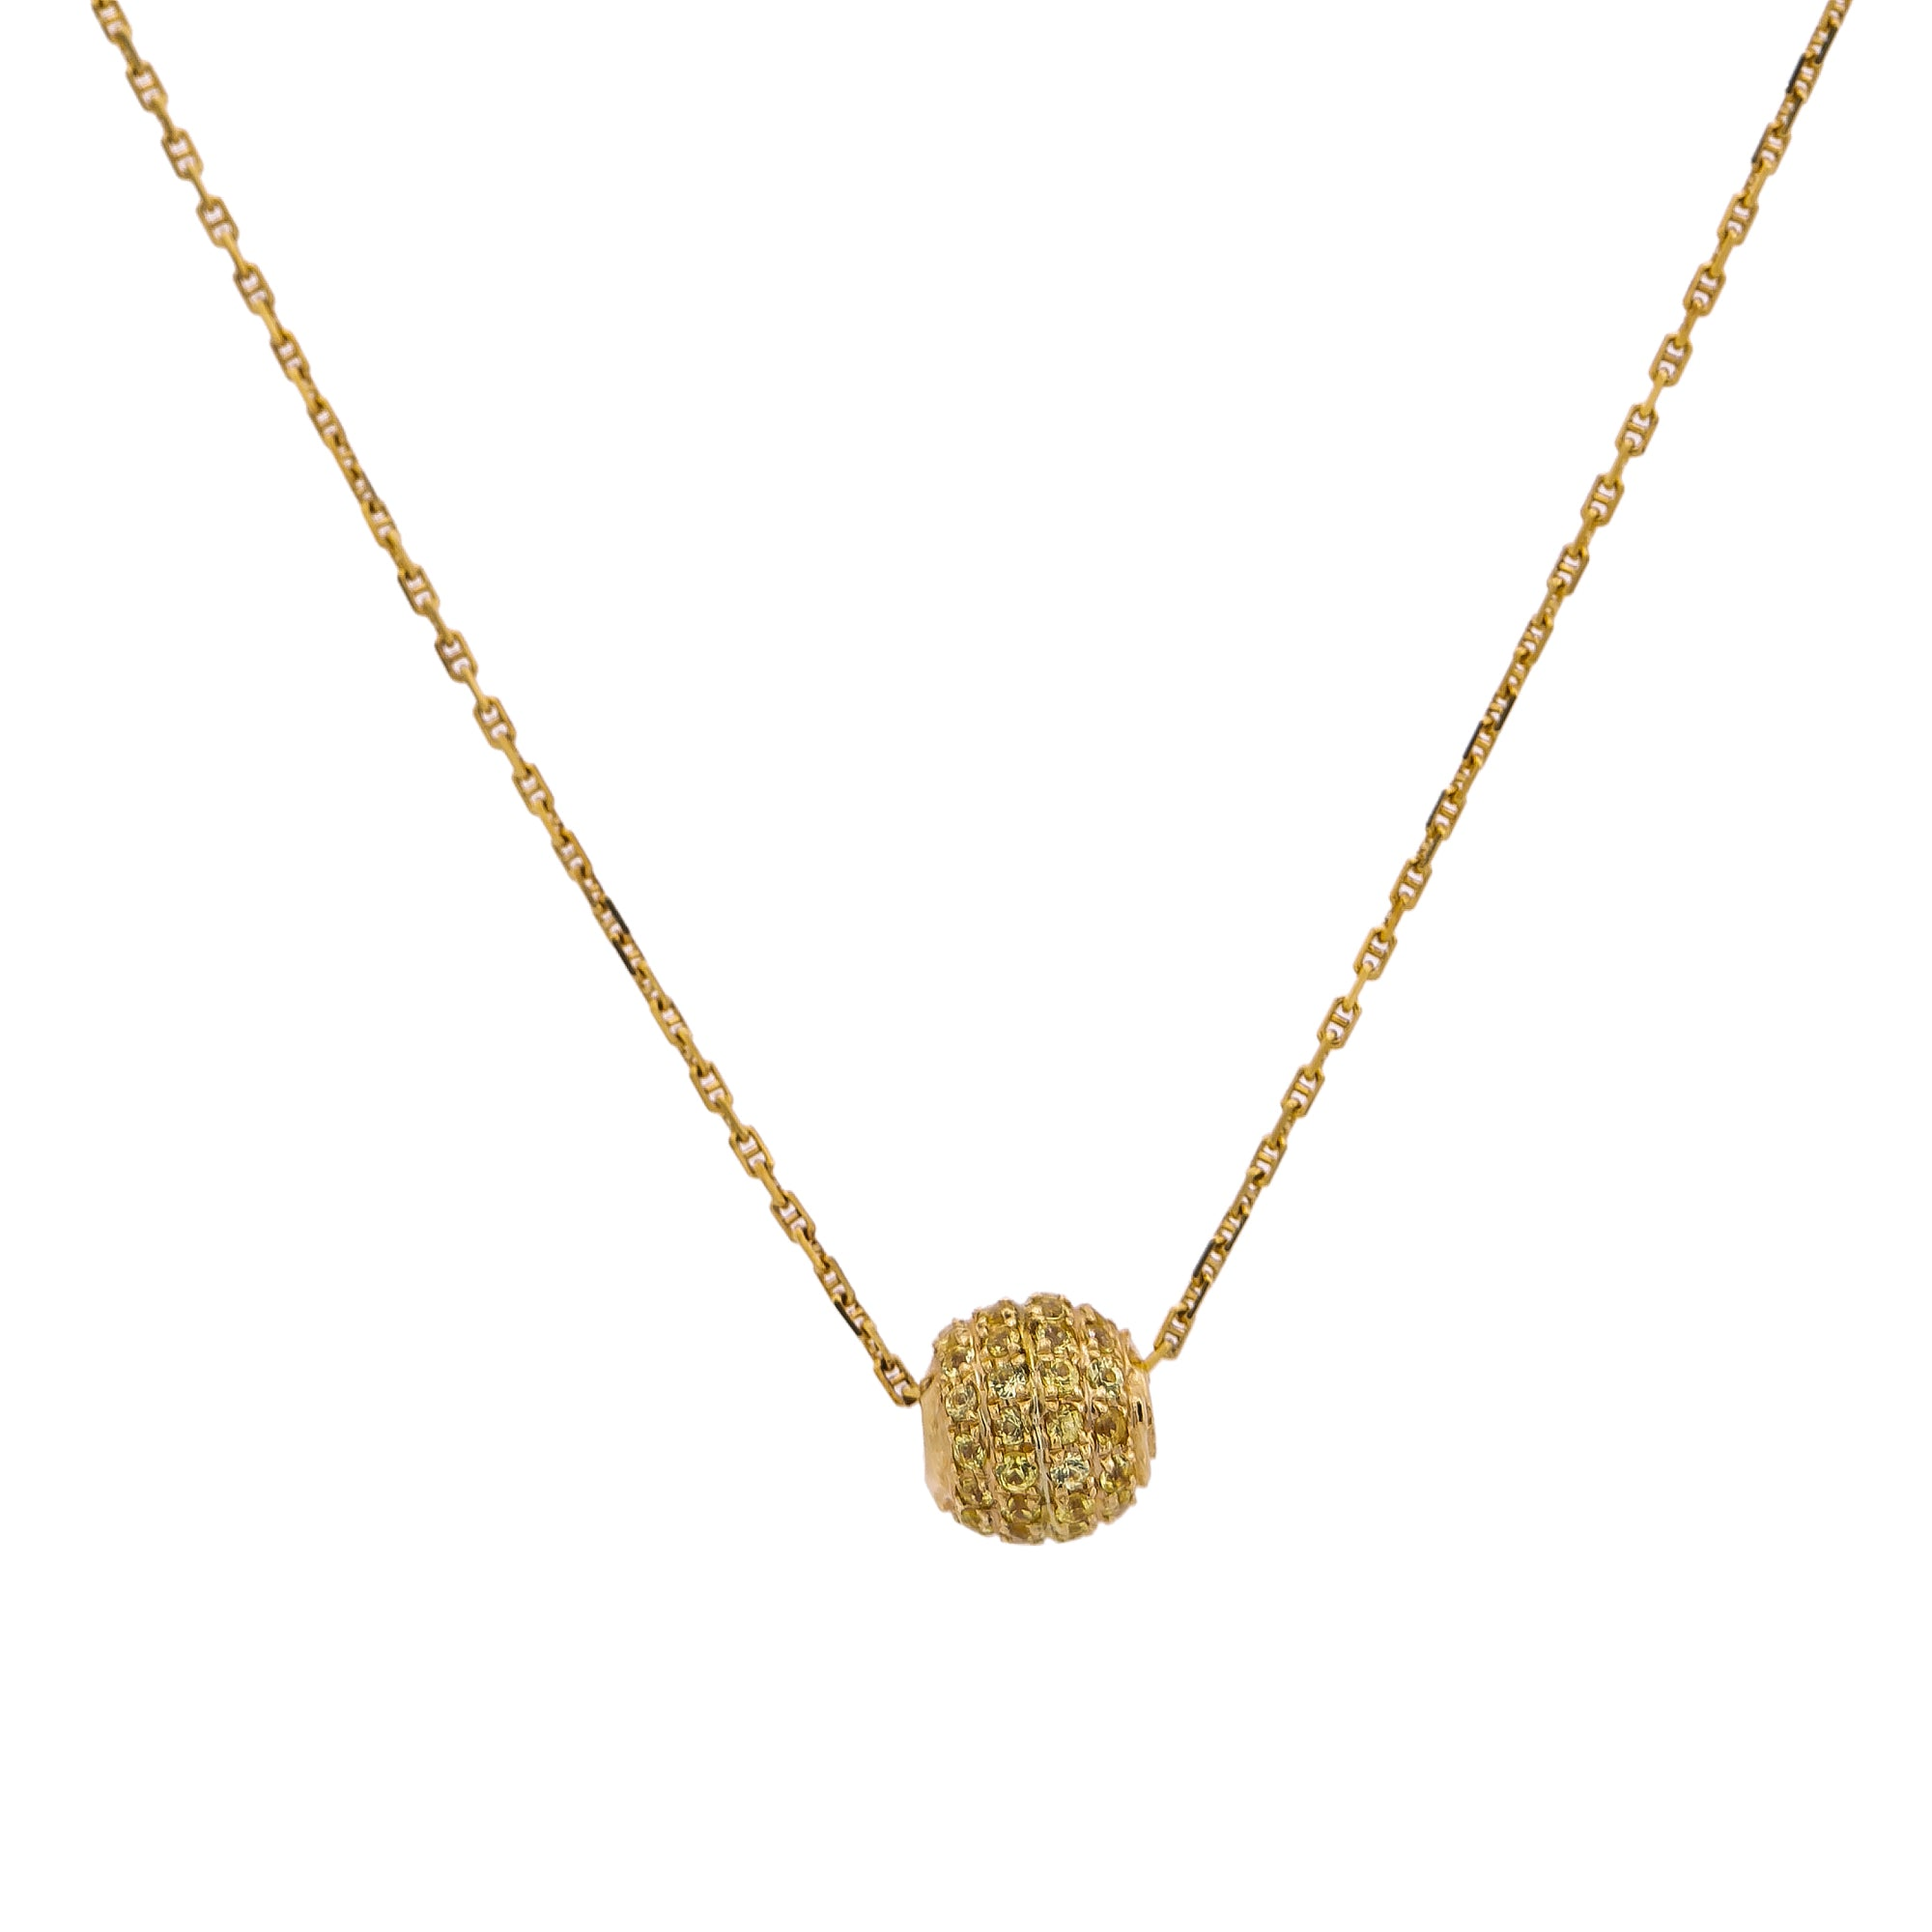 14K Yellow Gold Women's Necklace, chain and diamonds